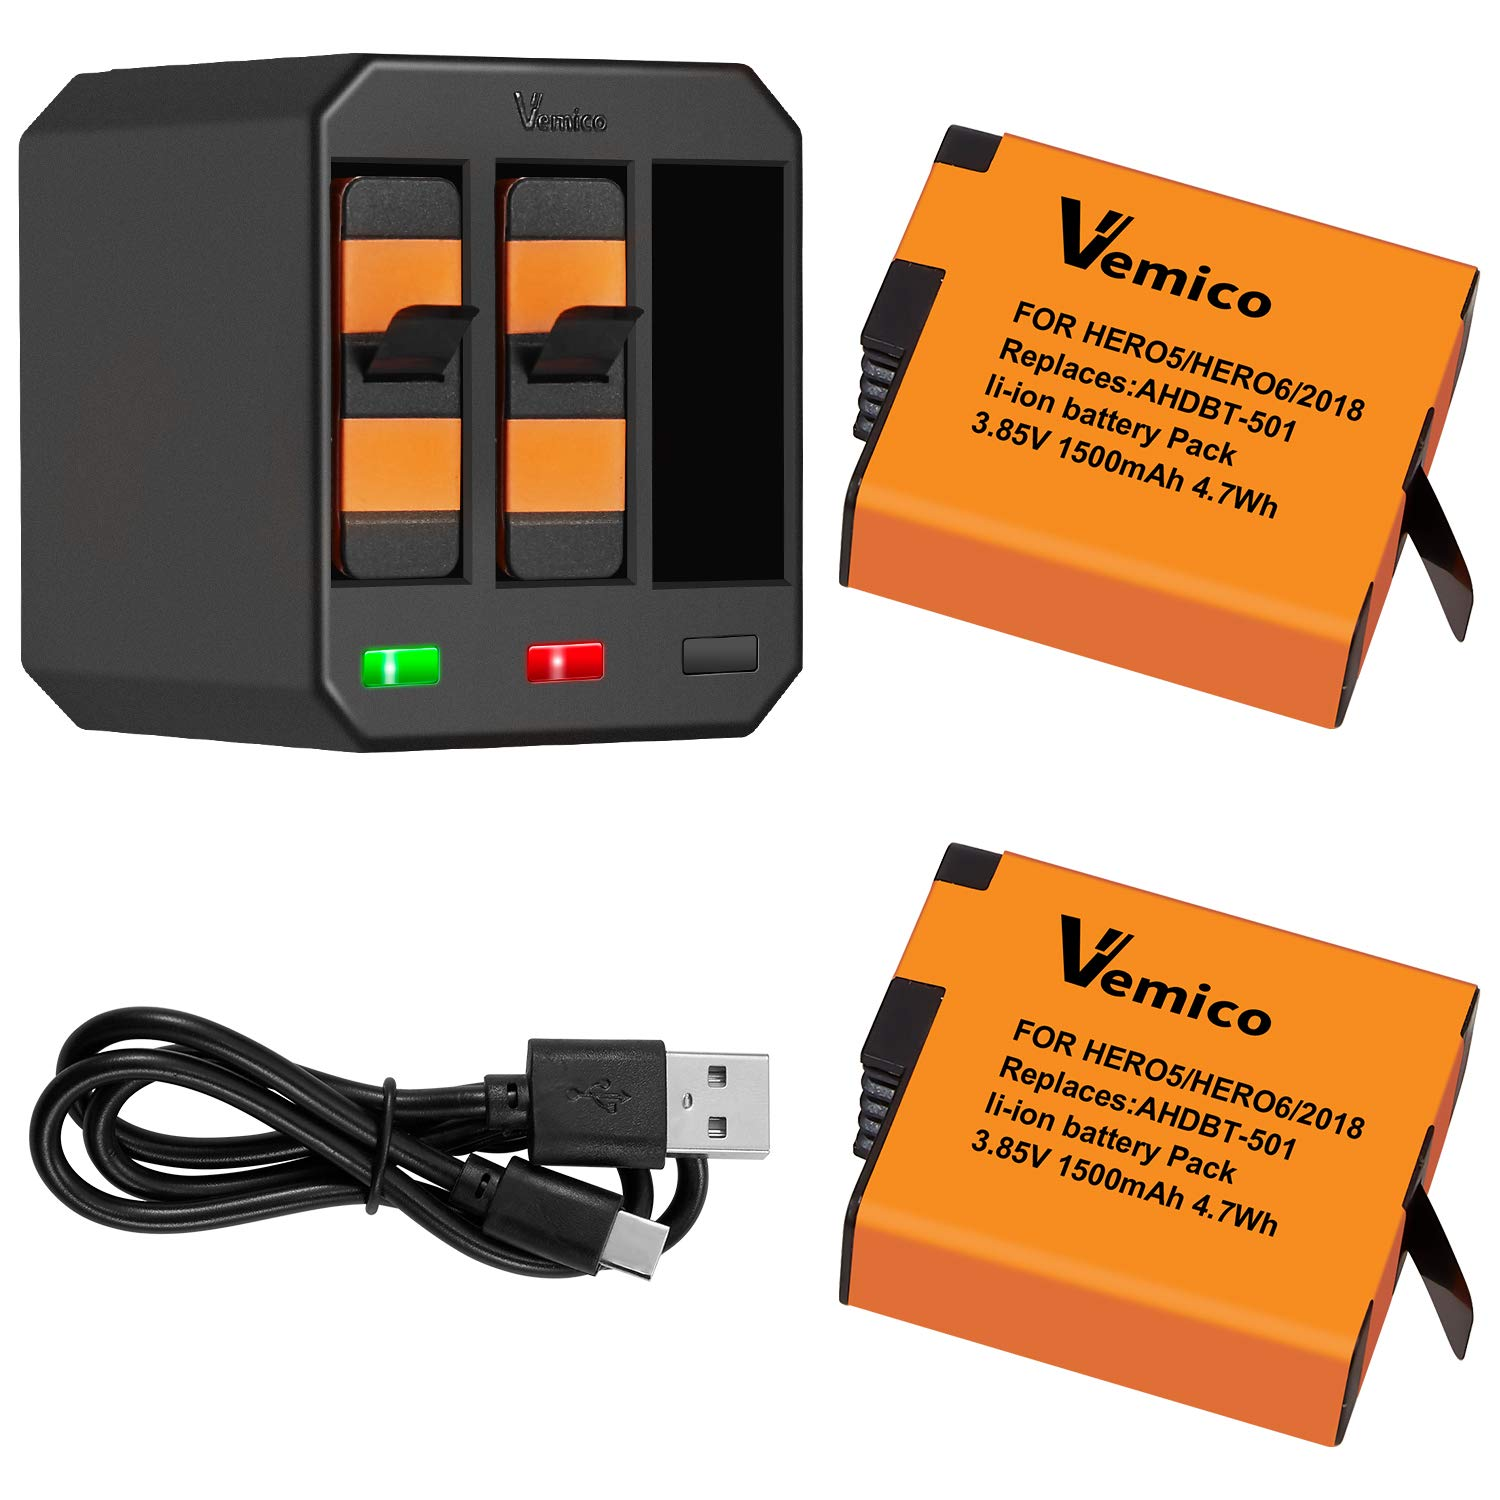 Vemico Battery Hero 7/6/5 1500mah Replacement Batteries (2 Pack) and 3-Channel LED Type C USB Charger for Hero 7 Black,Hero 6,Hero 5,Hero 2018, AHDBT-501(Fully Compatible with Original)